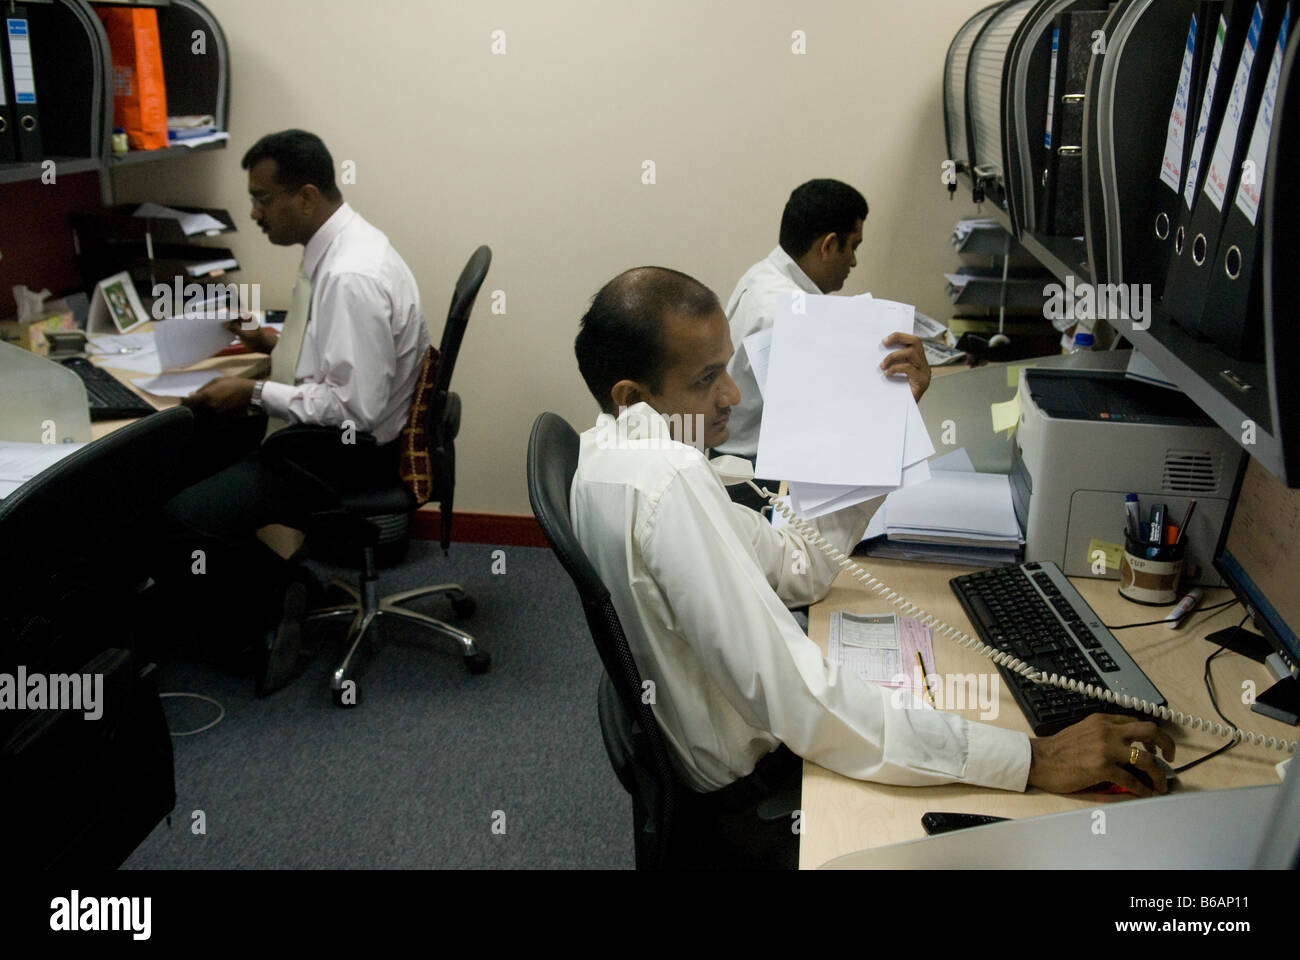 Axiom Office Stock Photos & Axiom Office Stock Images - Alamy